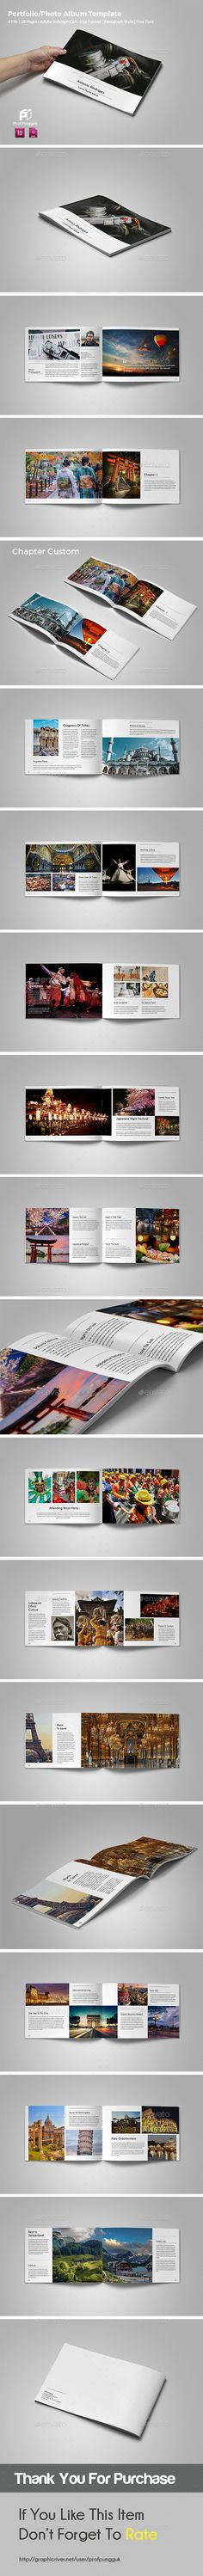 Photography Portfolio/Photo Album (landscape) Template InDesign INDD. Download here: http://graphicriver.net/item/photography-portfoliophoto-album-landscape-vol4/15485495?ref=ksioks